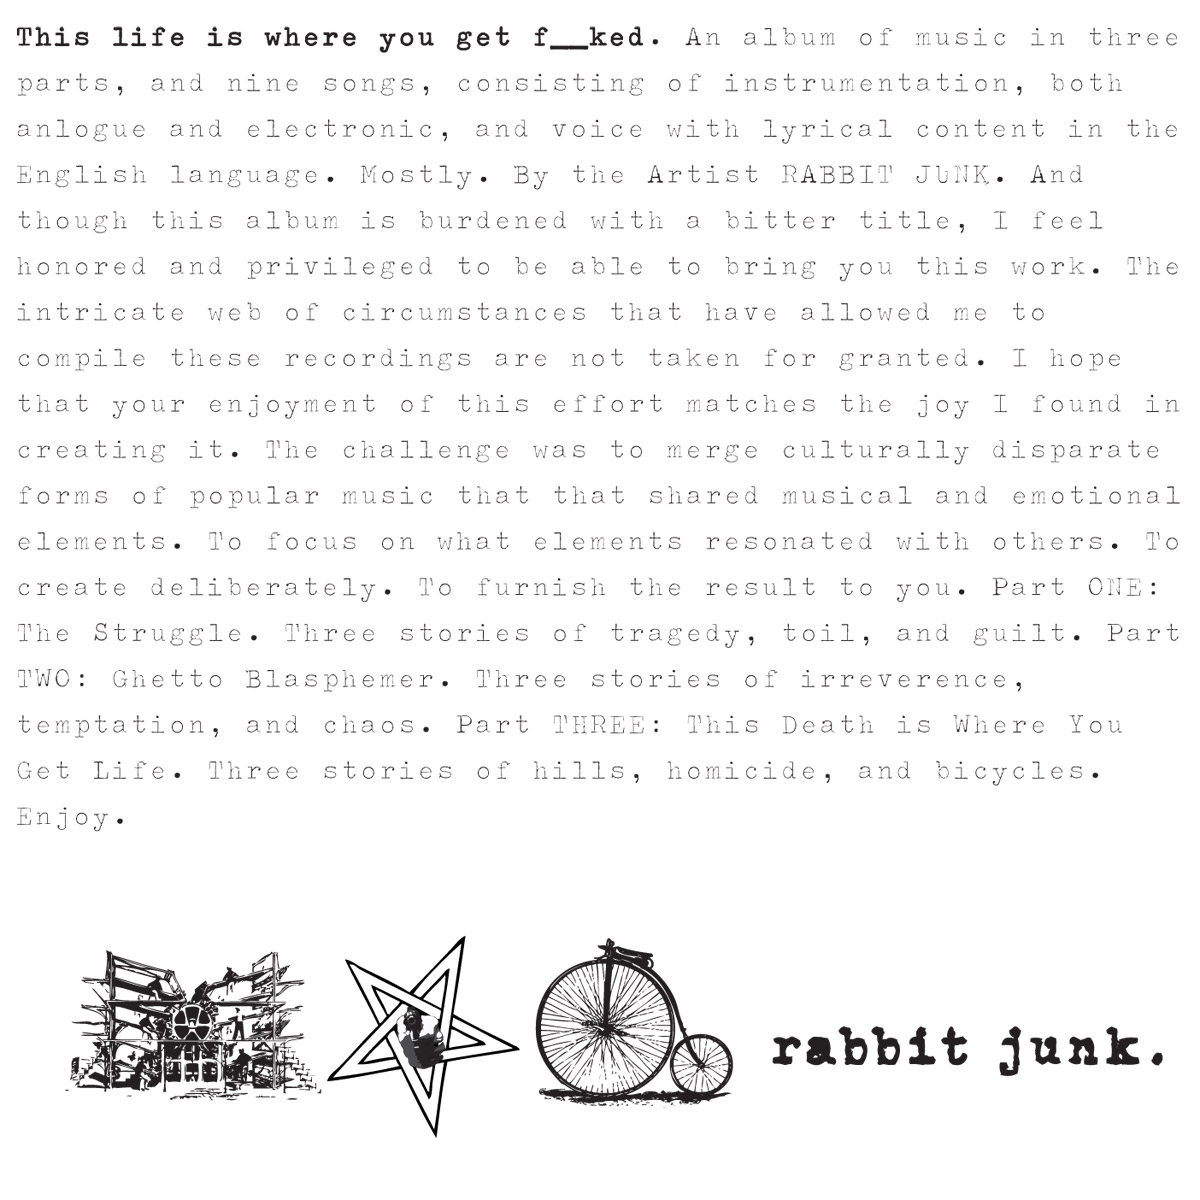 Fucked By Rabbit rabbit junk - this life is where you get fucked (full mp3 album)